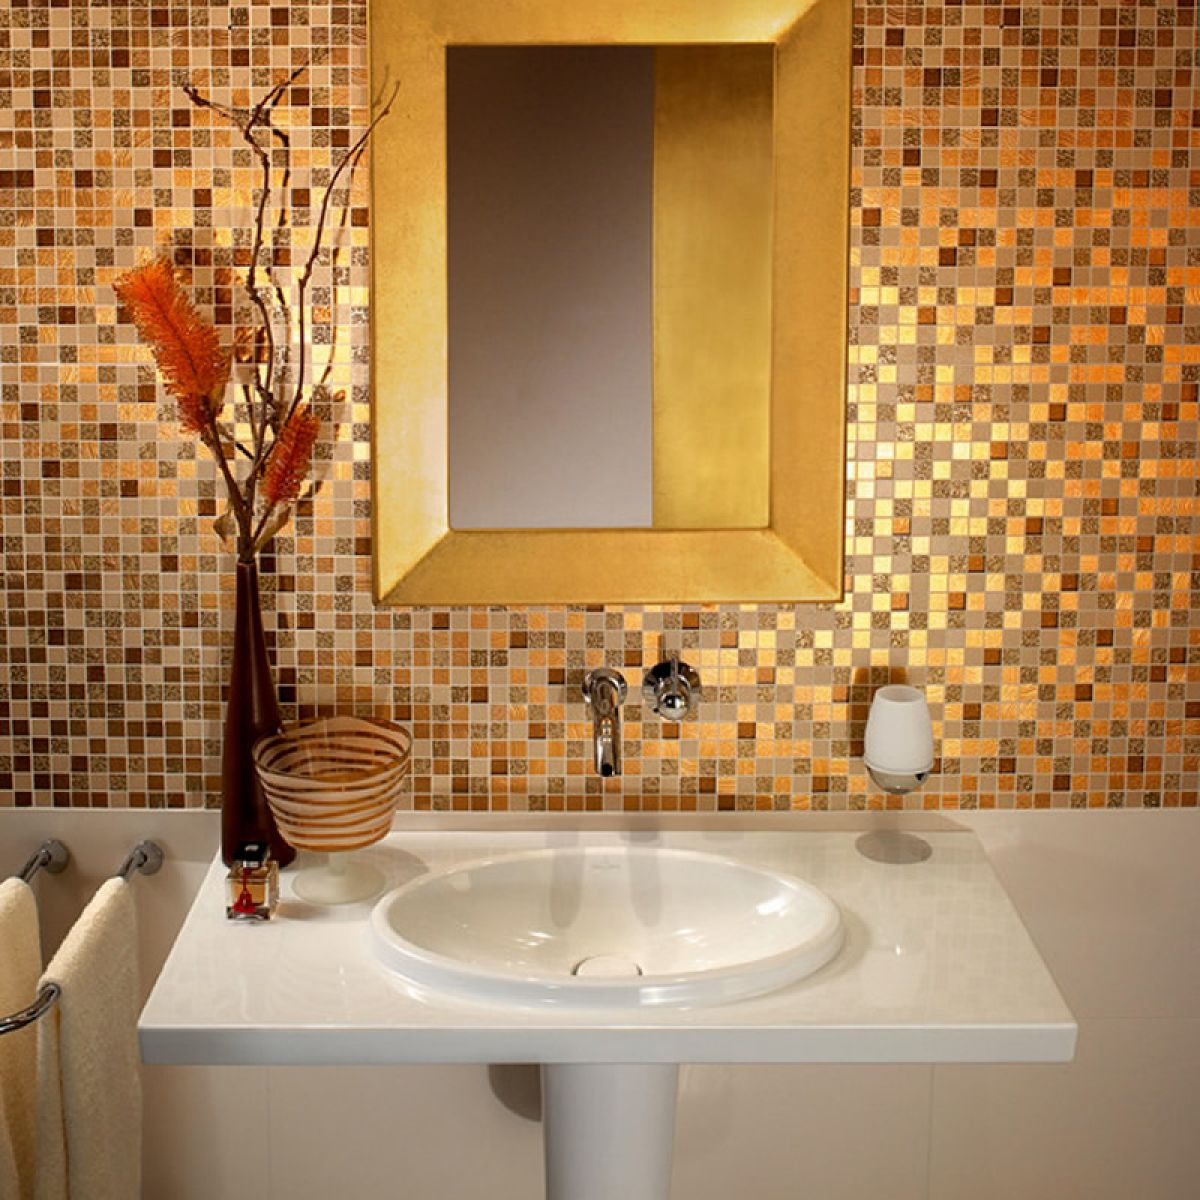 mosaic bathroom tiles uk 31 original mosaic bathroom tiles uk eyagci 19653